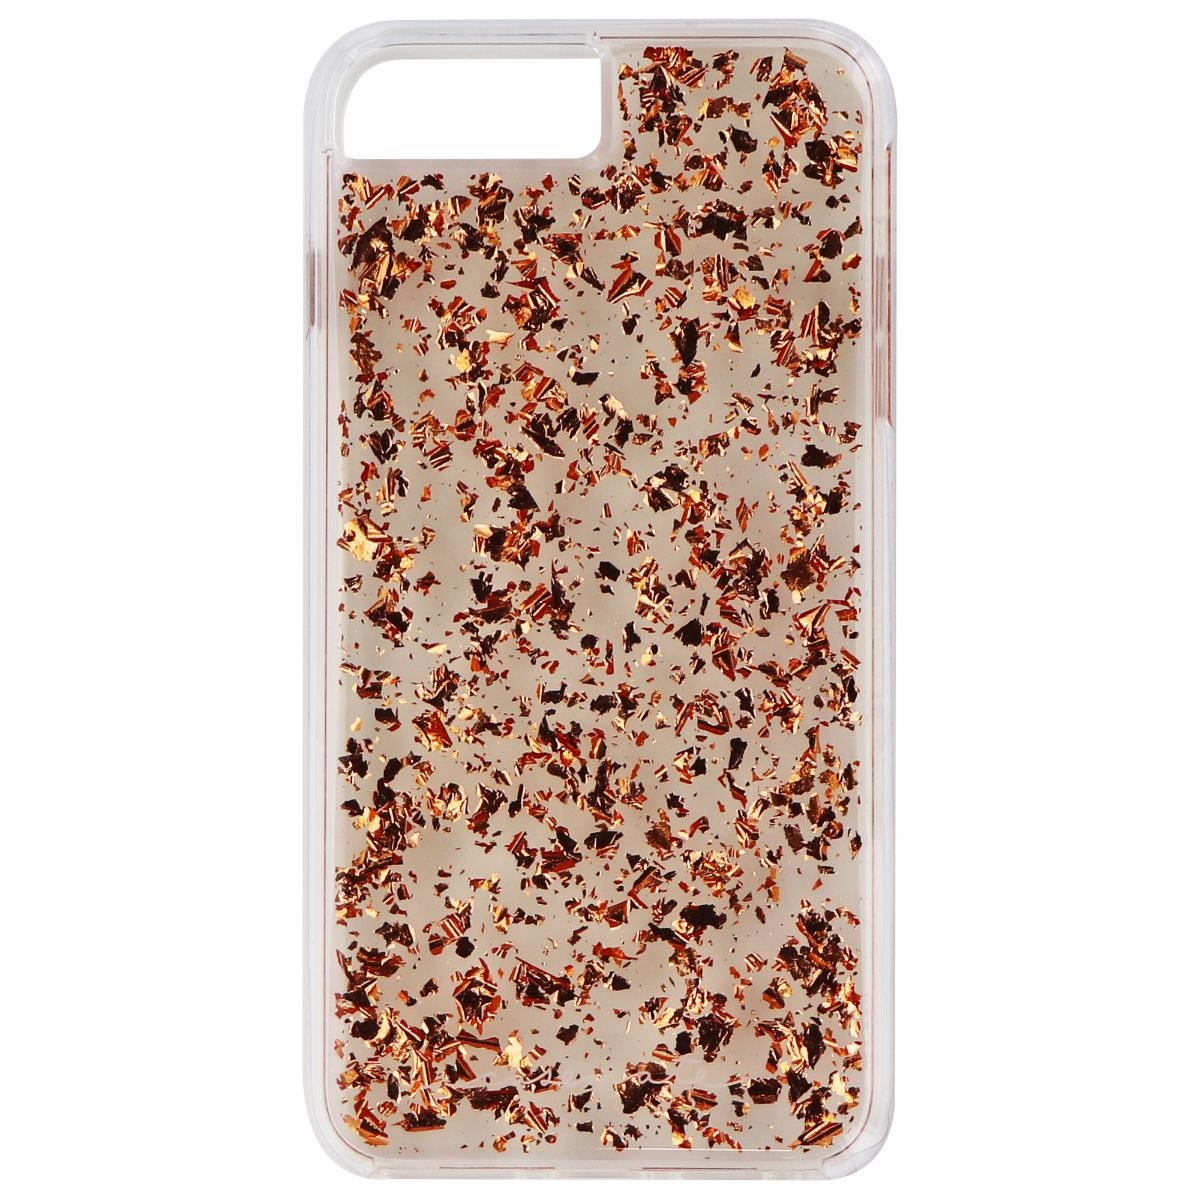 Case-Mate CM036166X Slim Protective Design for iPhone 8 Plus Case - Rose Gold